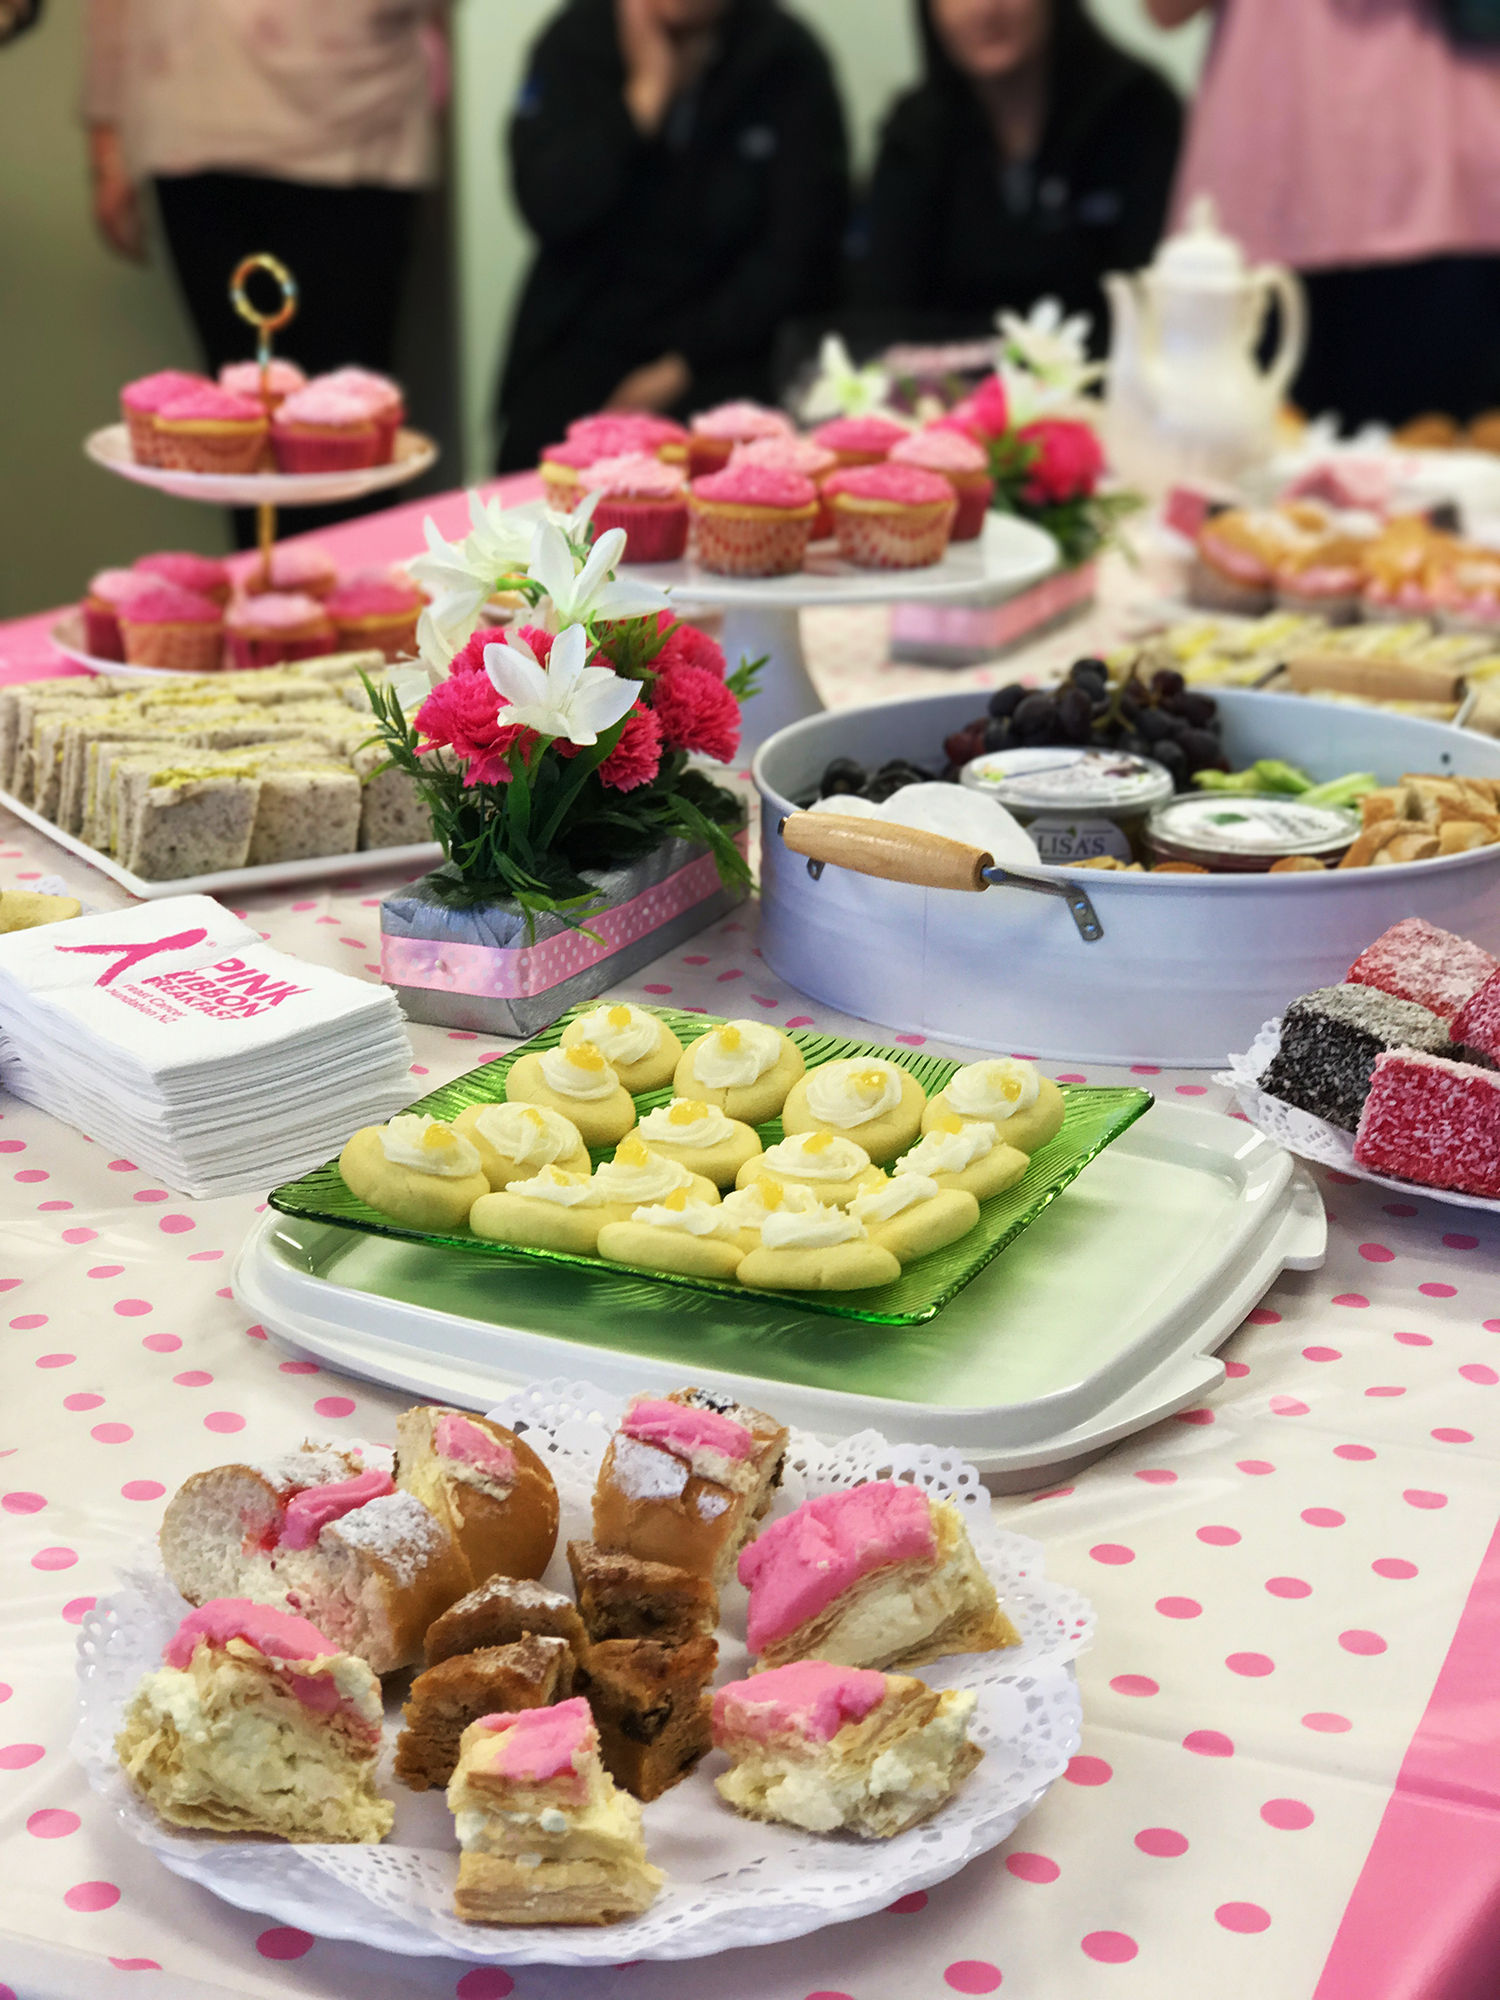 Last month's Pink Ribbon breakfast at the office that put the spotlight on the fight against breast cancer and of celebrating the tradition of high tea/breakfast with all manner of sugary treats #ironic